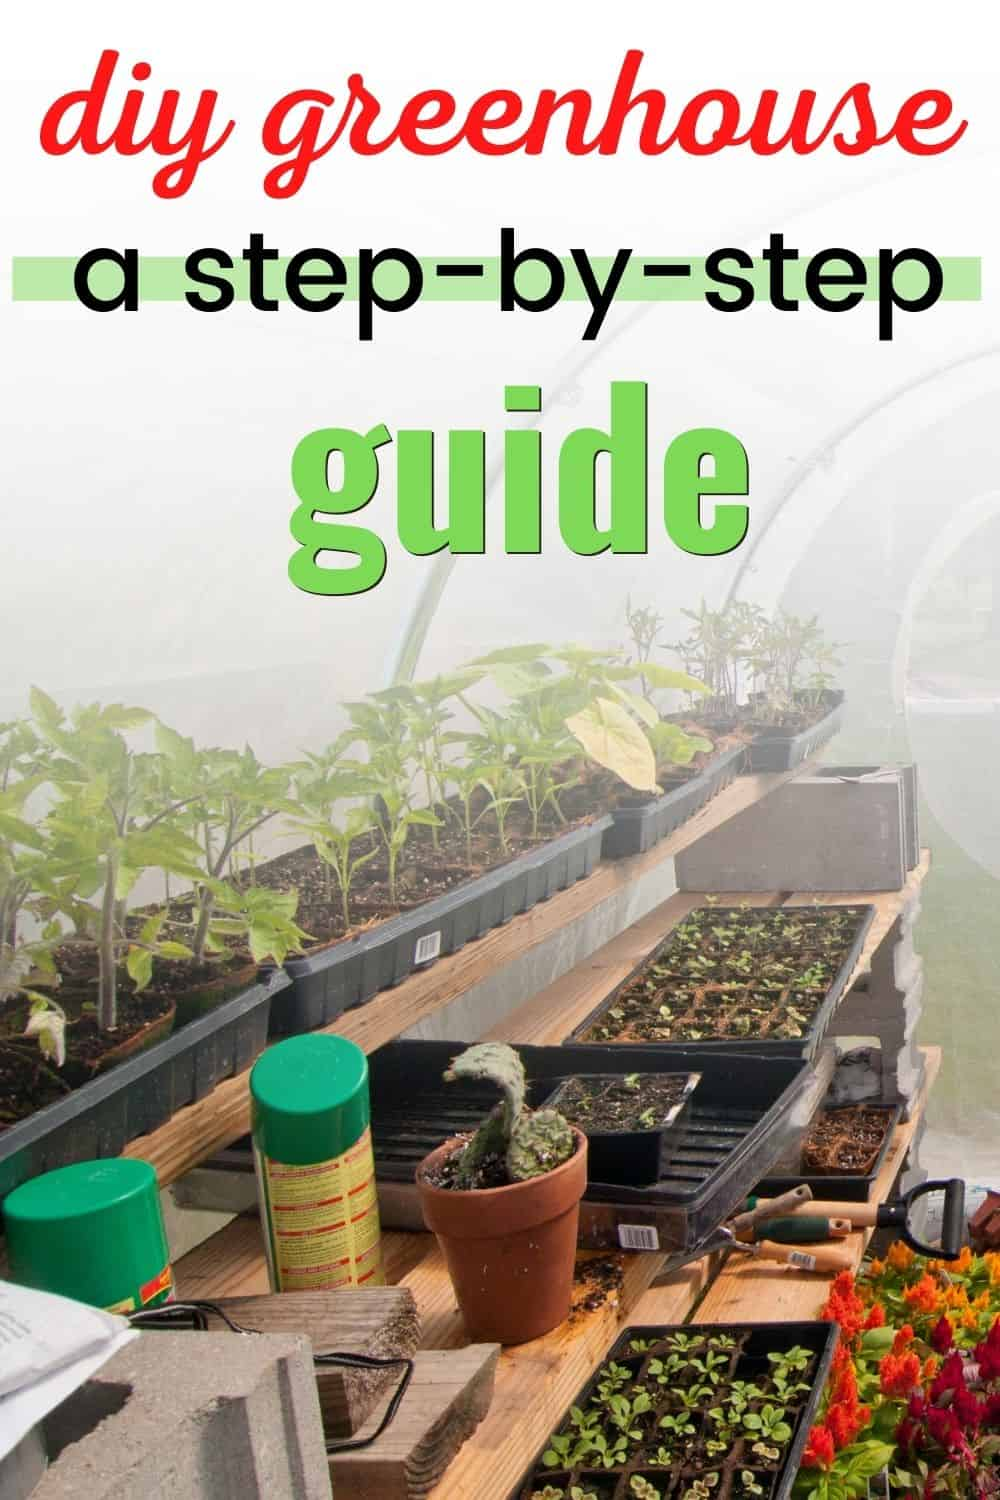 DIY Greenhouse - a step-by-step guide